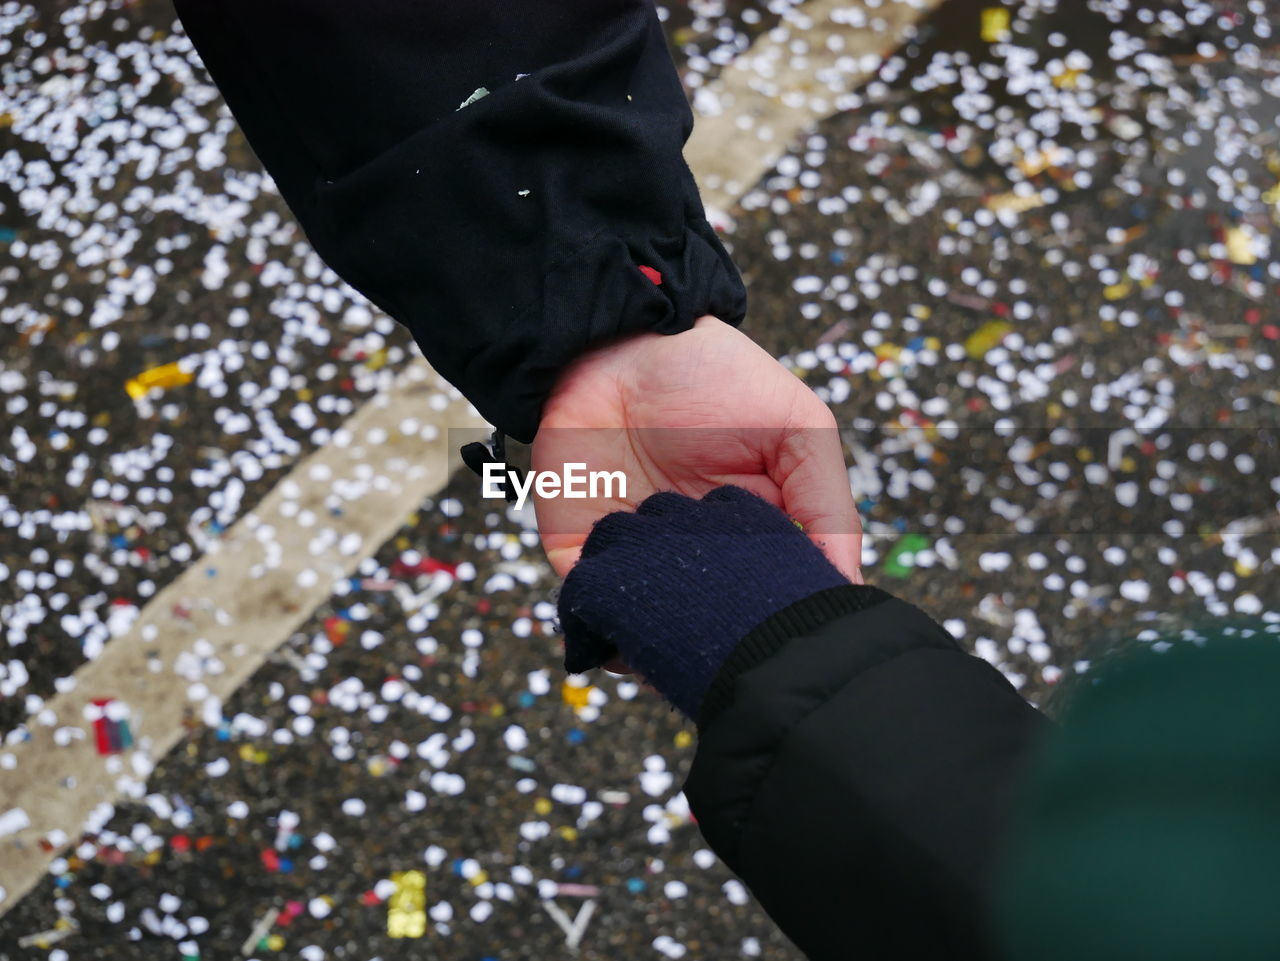 Cropped image of friends holding hands over confetti